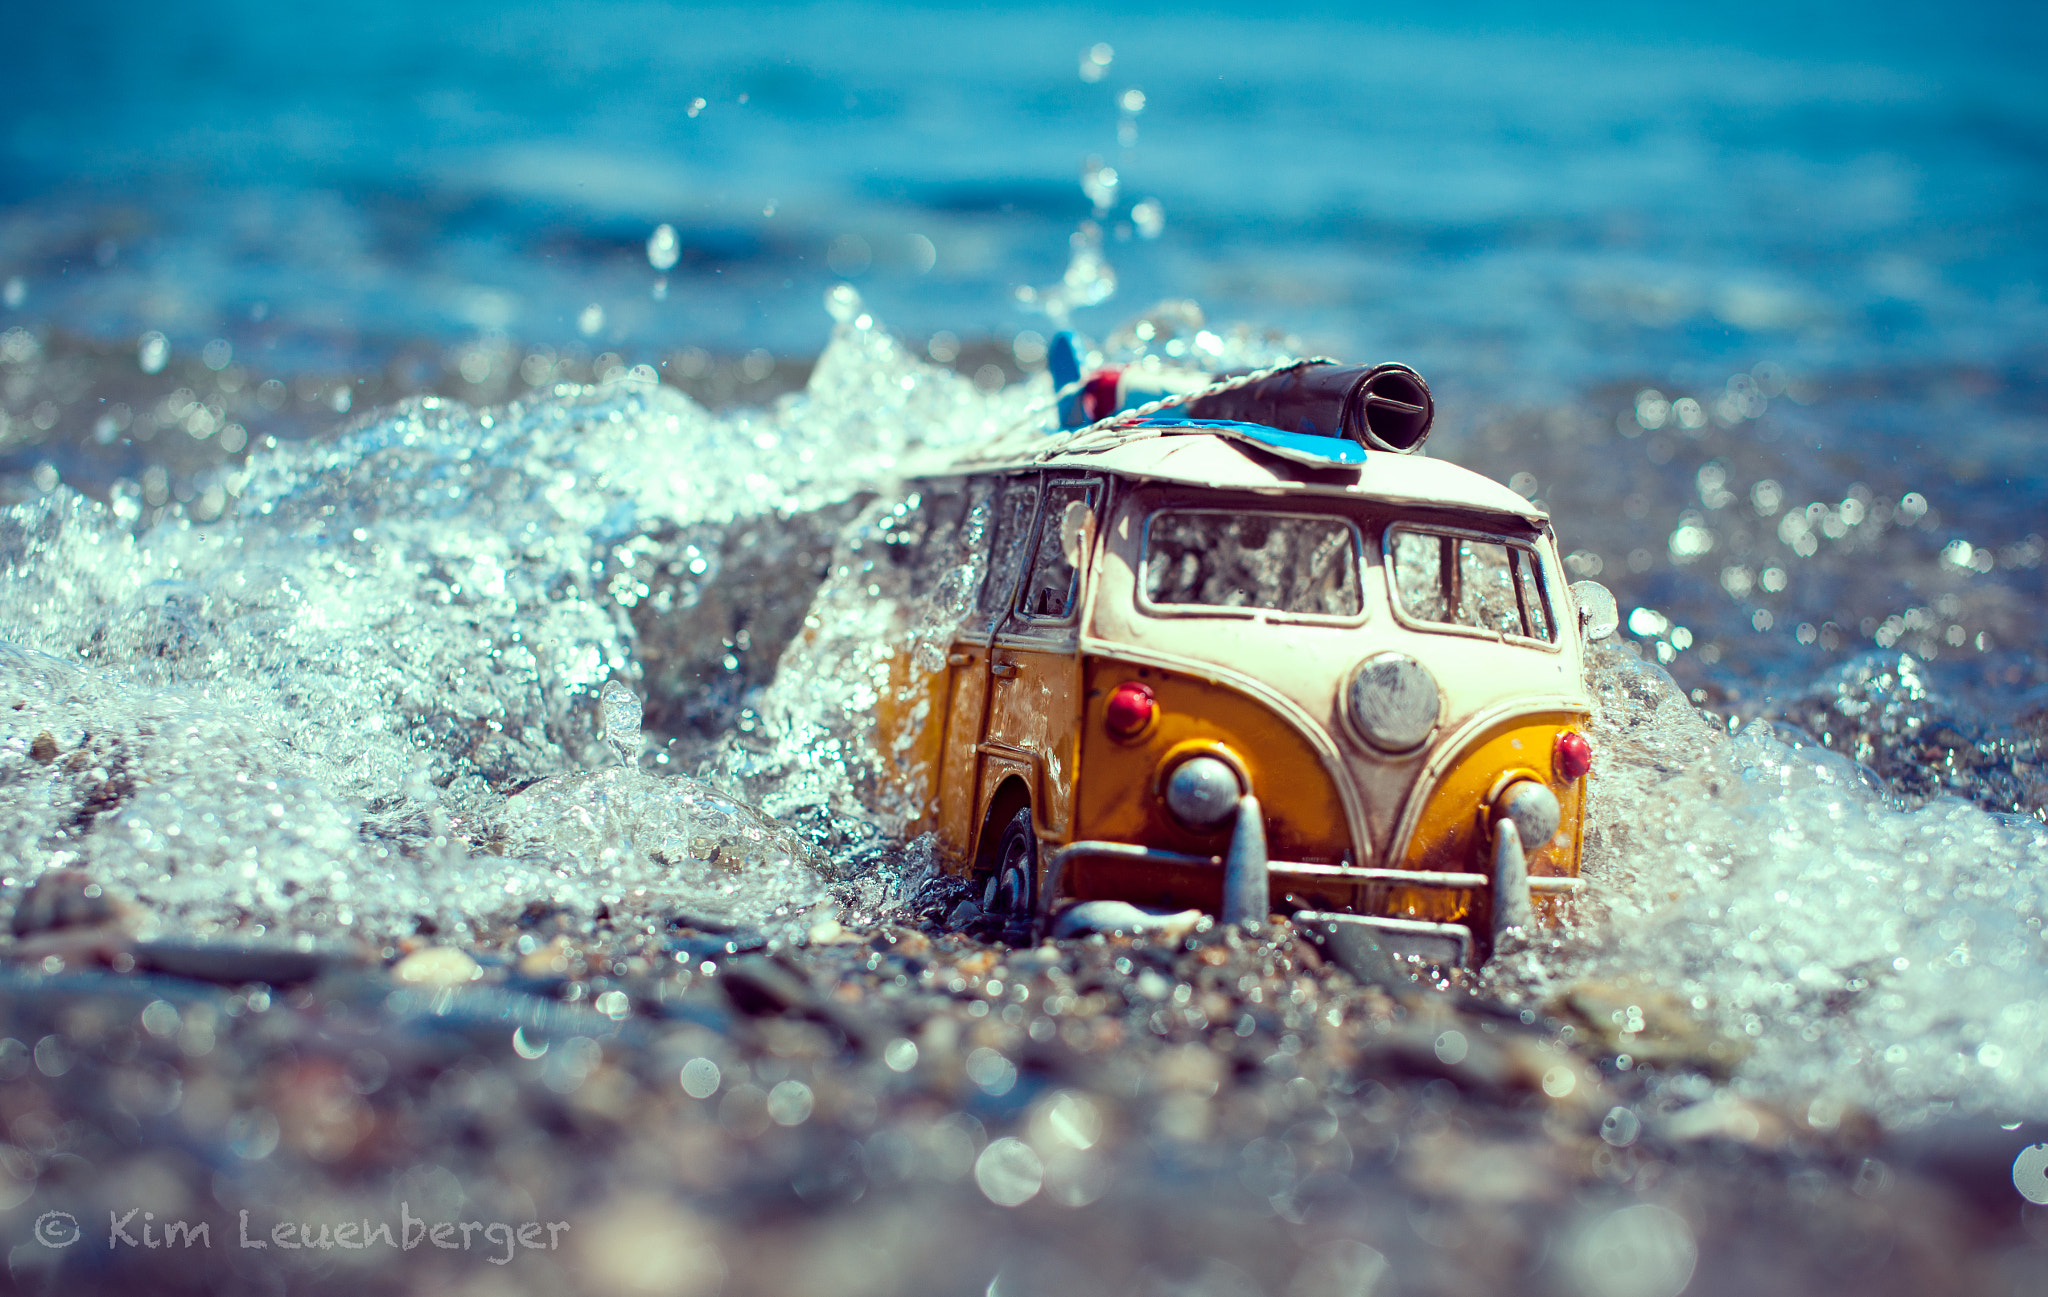 Photograph Swooooosh! by Kim Leuenberger on 500px